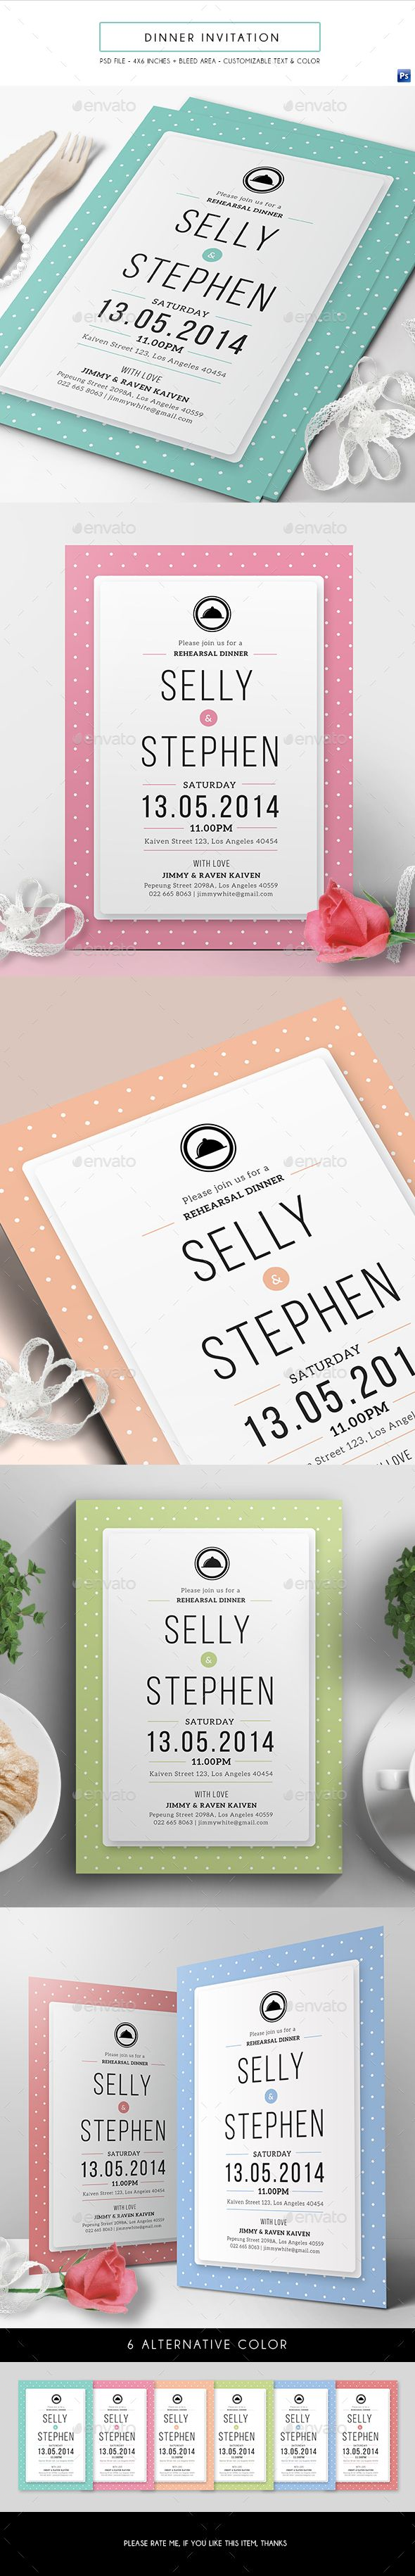 Pin By Best Graphic Design On Card Invite Design Templates